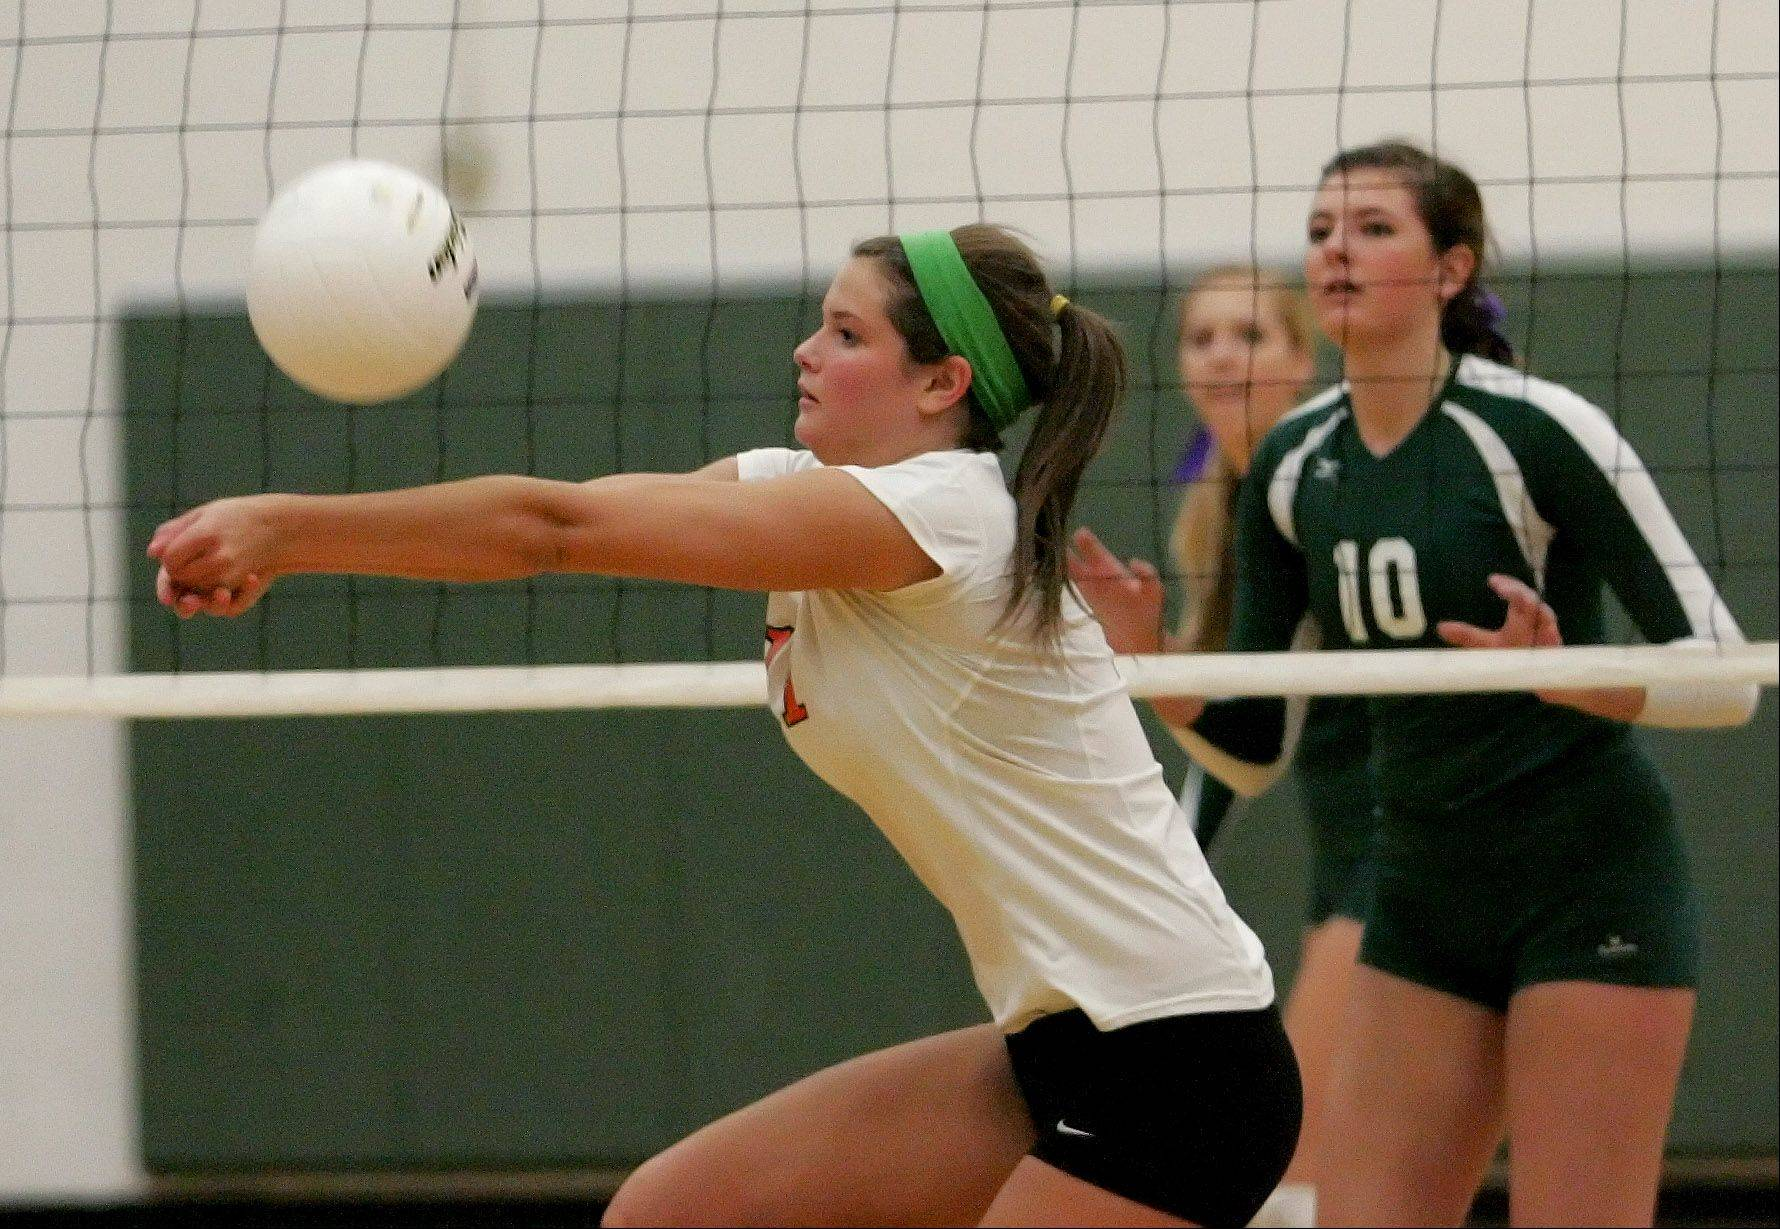 St. Charles East's Erienne Barry returns a ball during Monday's volleyball game against Waubonsie Valley.